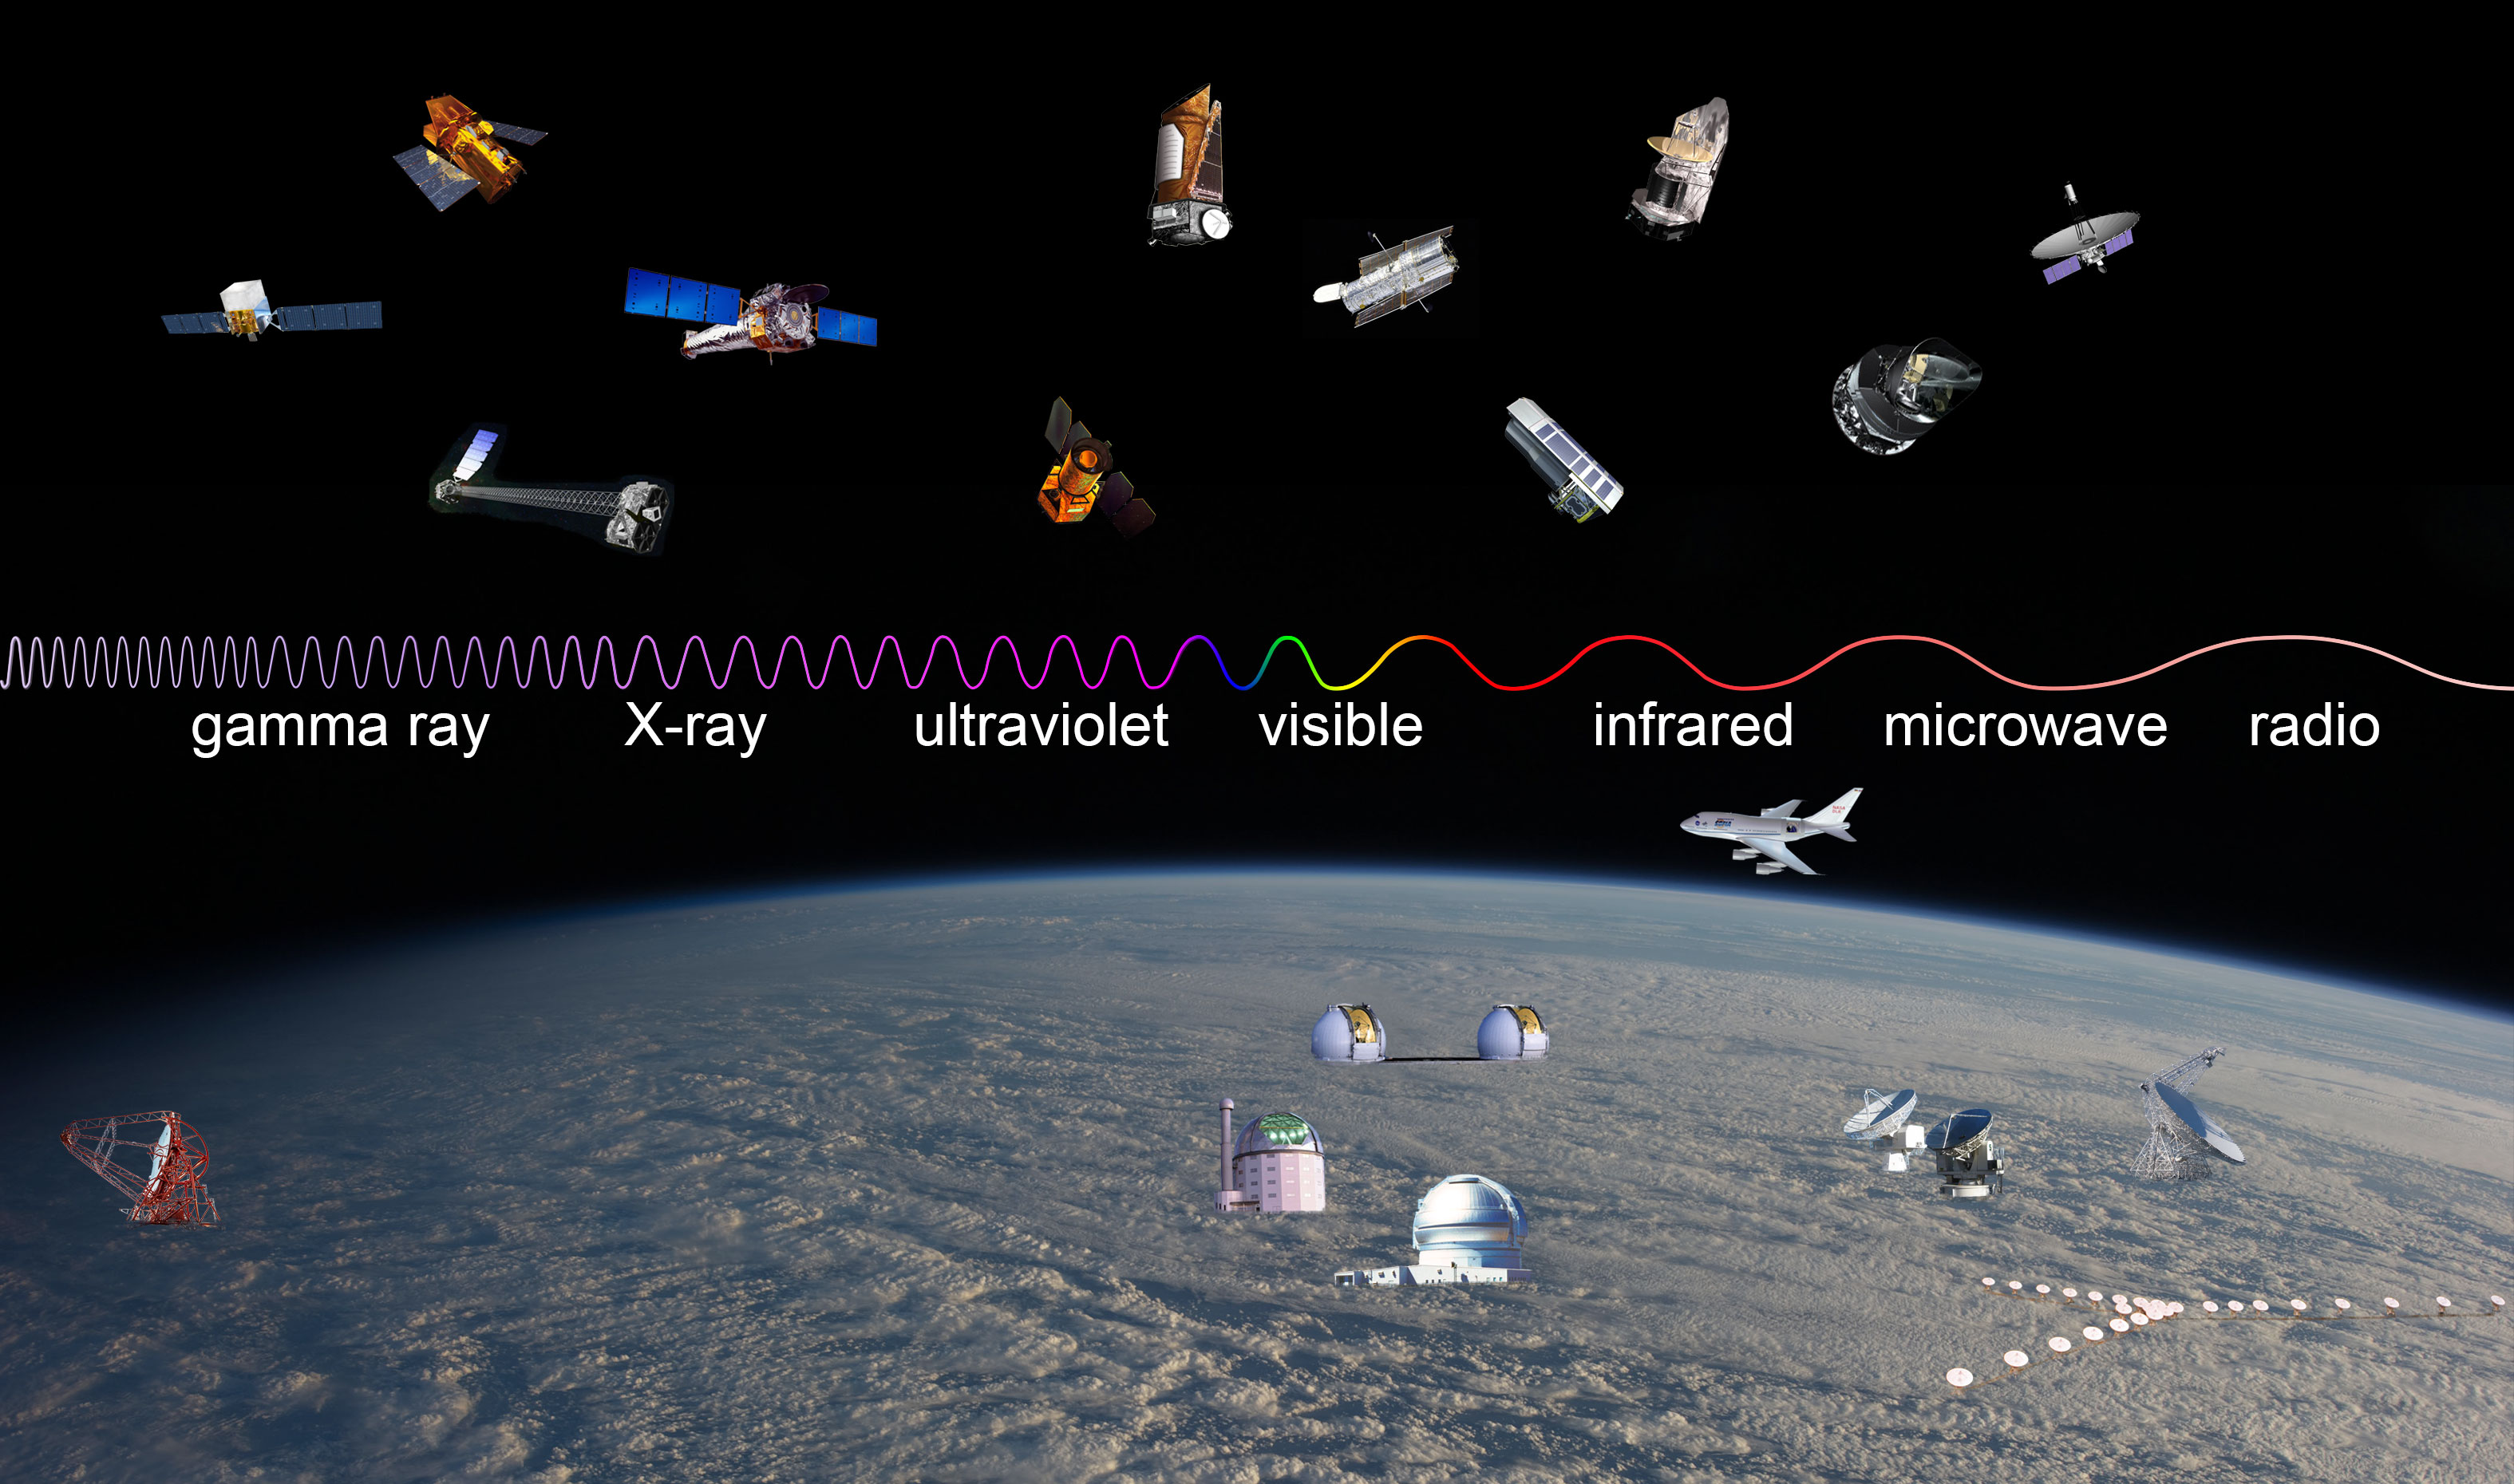 Observatories across the electromagnetic spectrum illustration showing different telescopes that observe each band of the electromagnetic spectrum ccuart Image collections